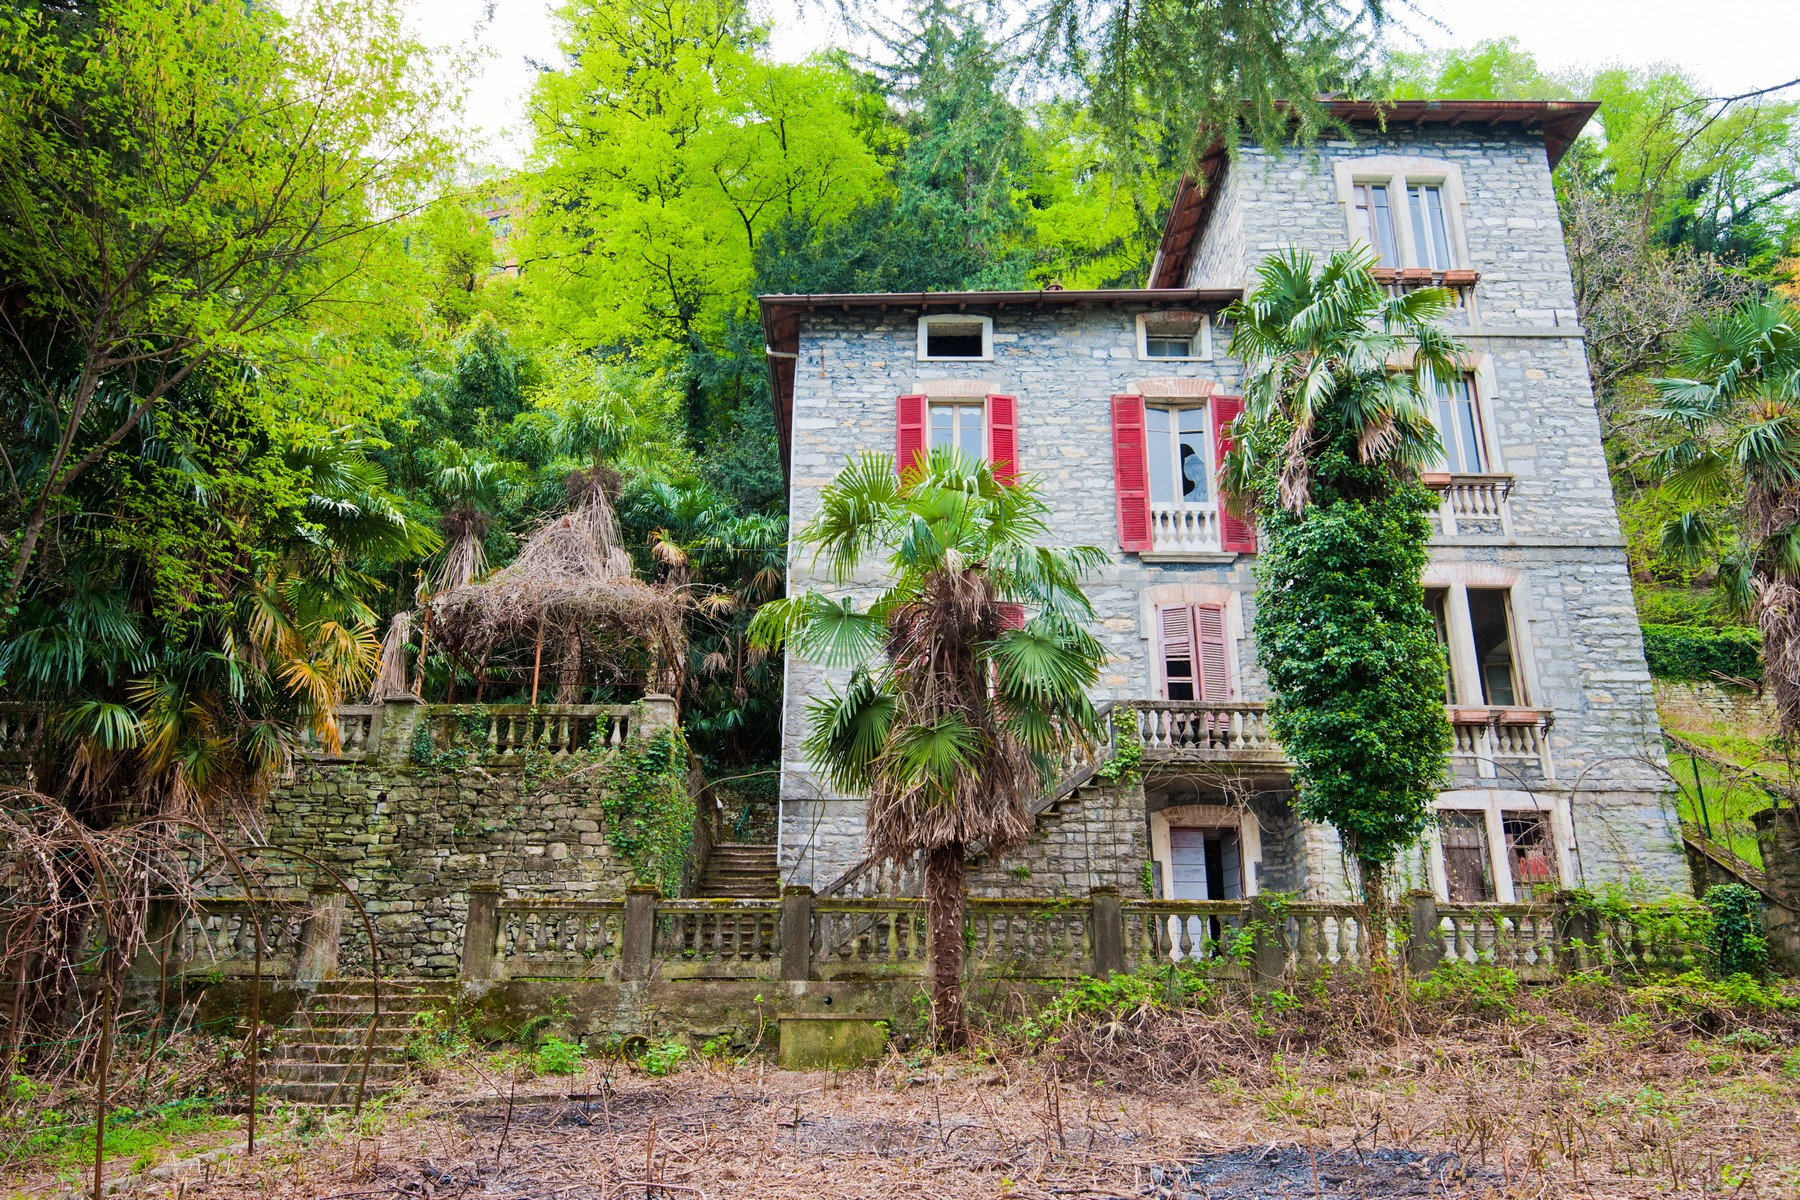 Additional photo for property listing at Fantastic pieds dans l'eau opportunity on Lake Como Via Pliniana Torno, Como 22020 Italy